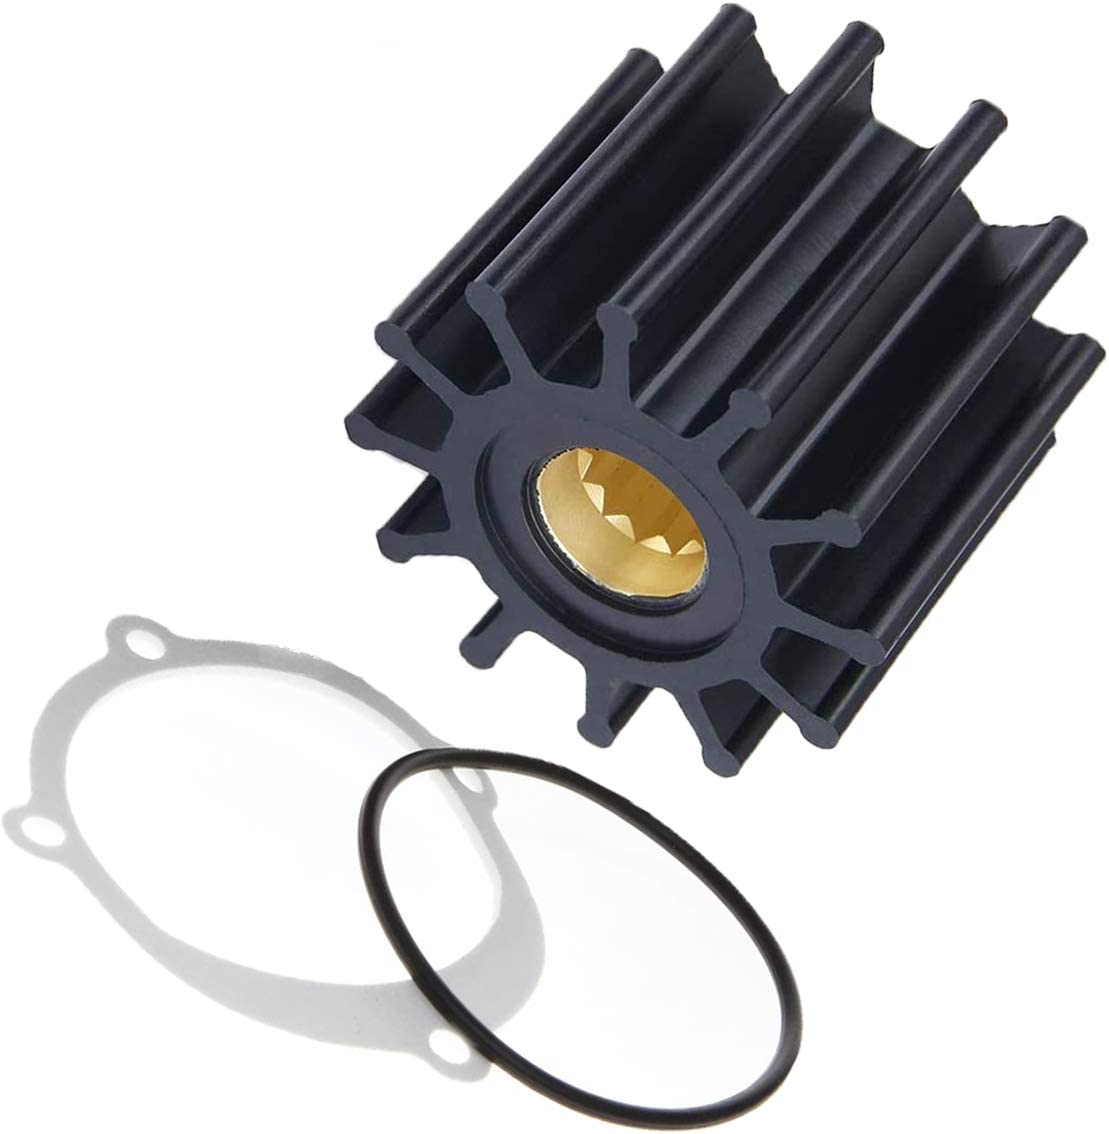 Water Pump Impeller Kit Compatible with Volvo Penta 3.0 V8 V6 4. Ranking integrated 1st place National products